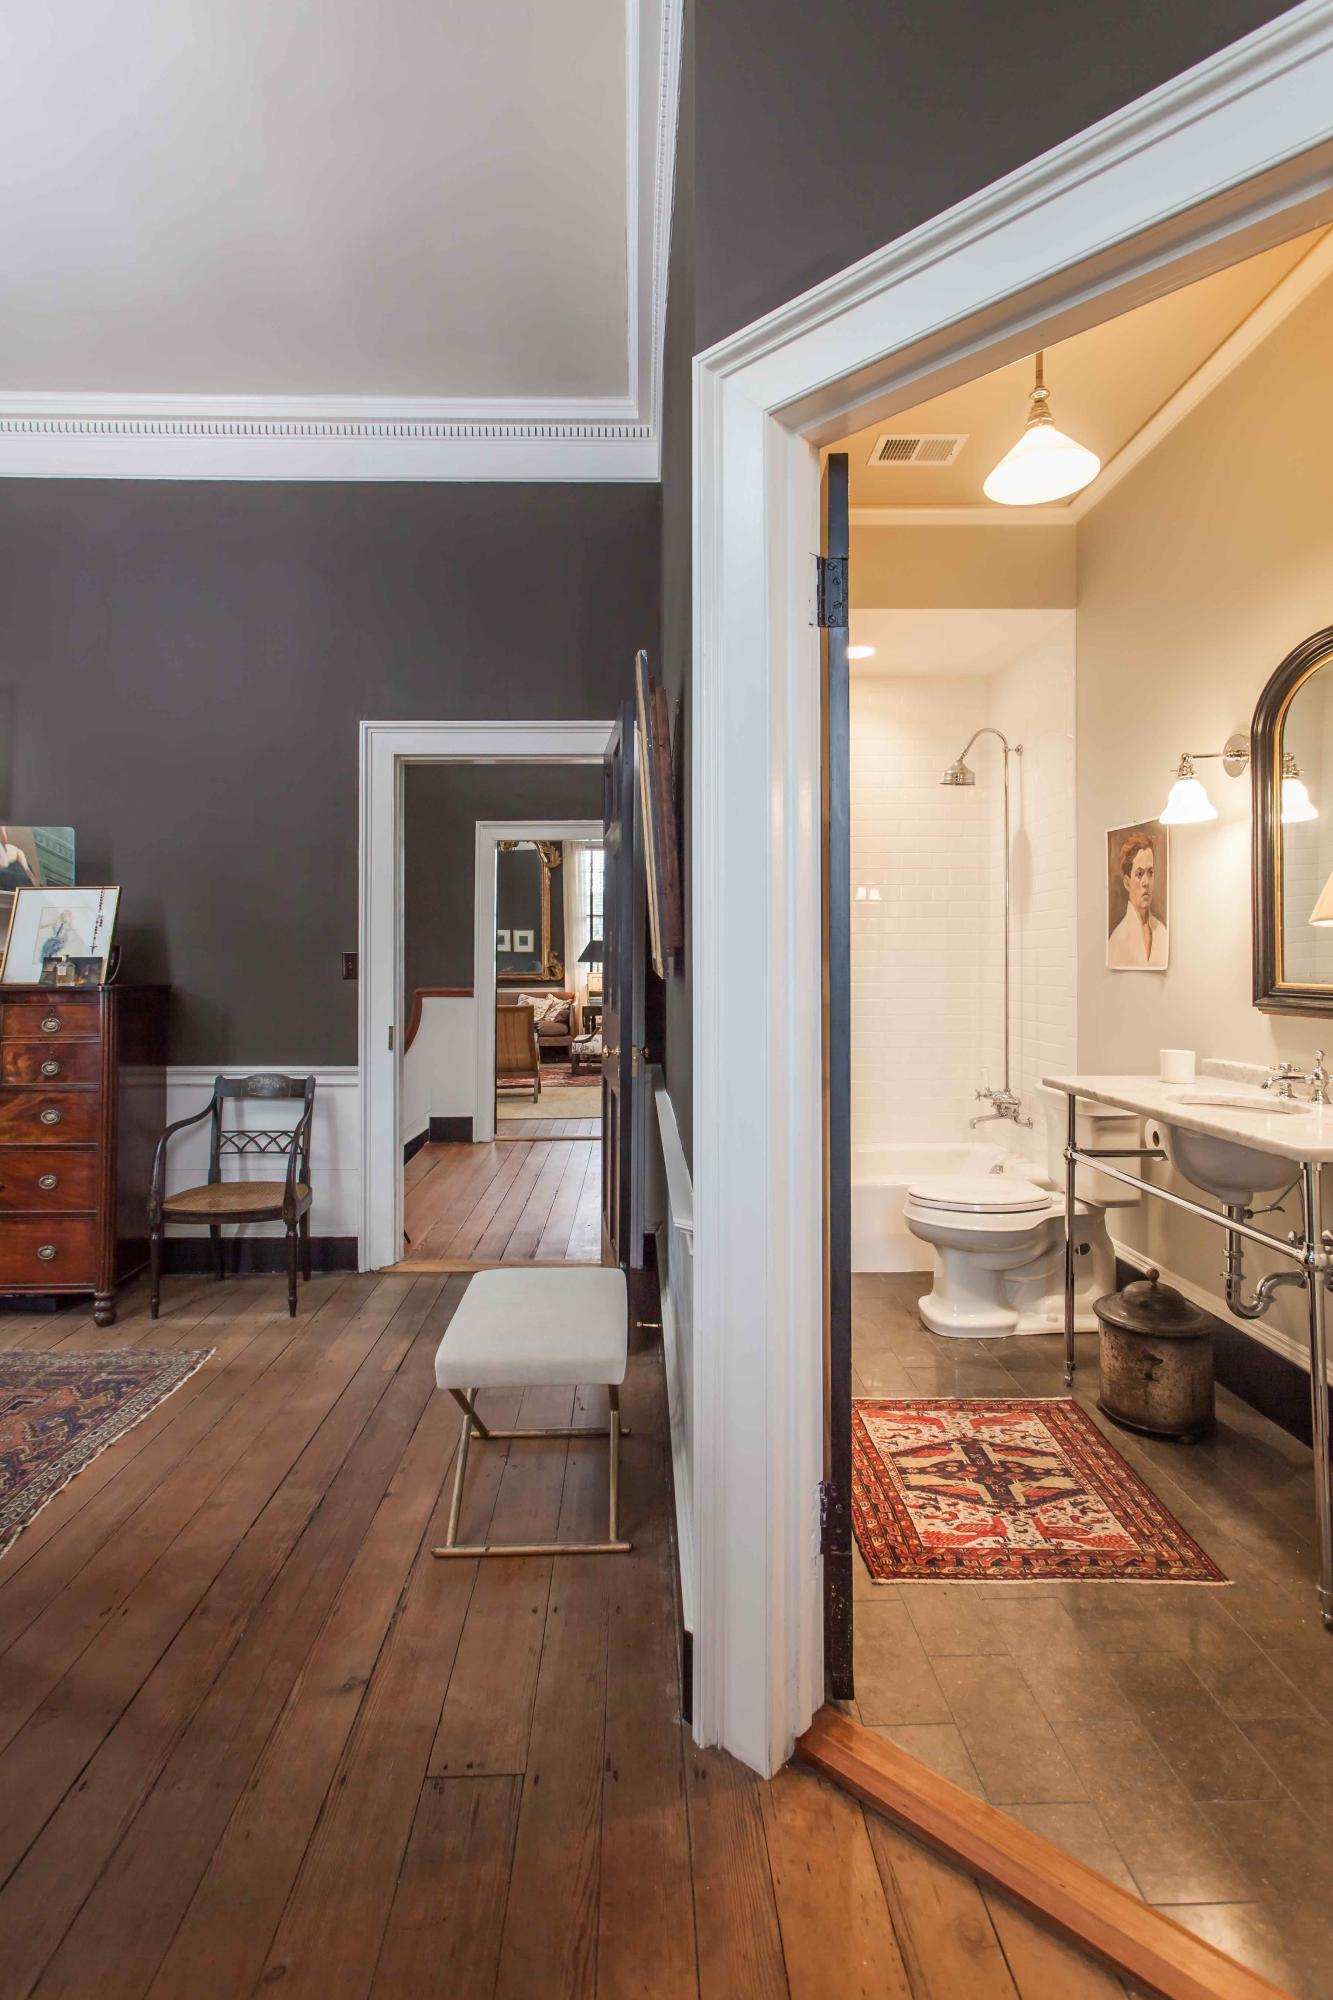 South of Broad Homes For Sale - 58 South Battery, Charleston, SC - 33